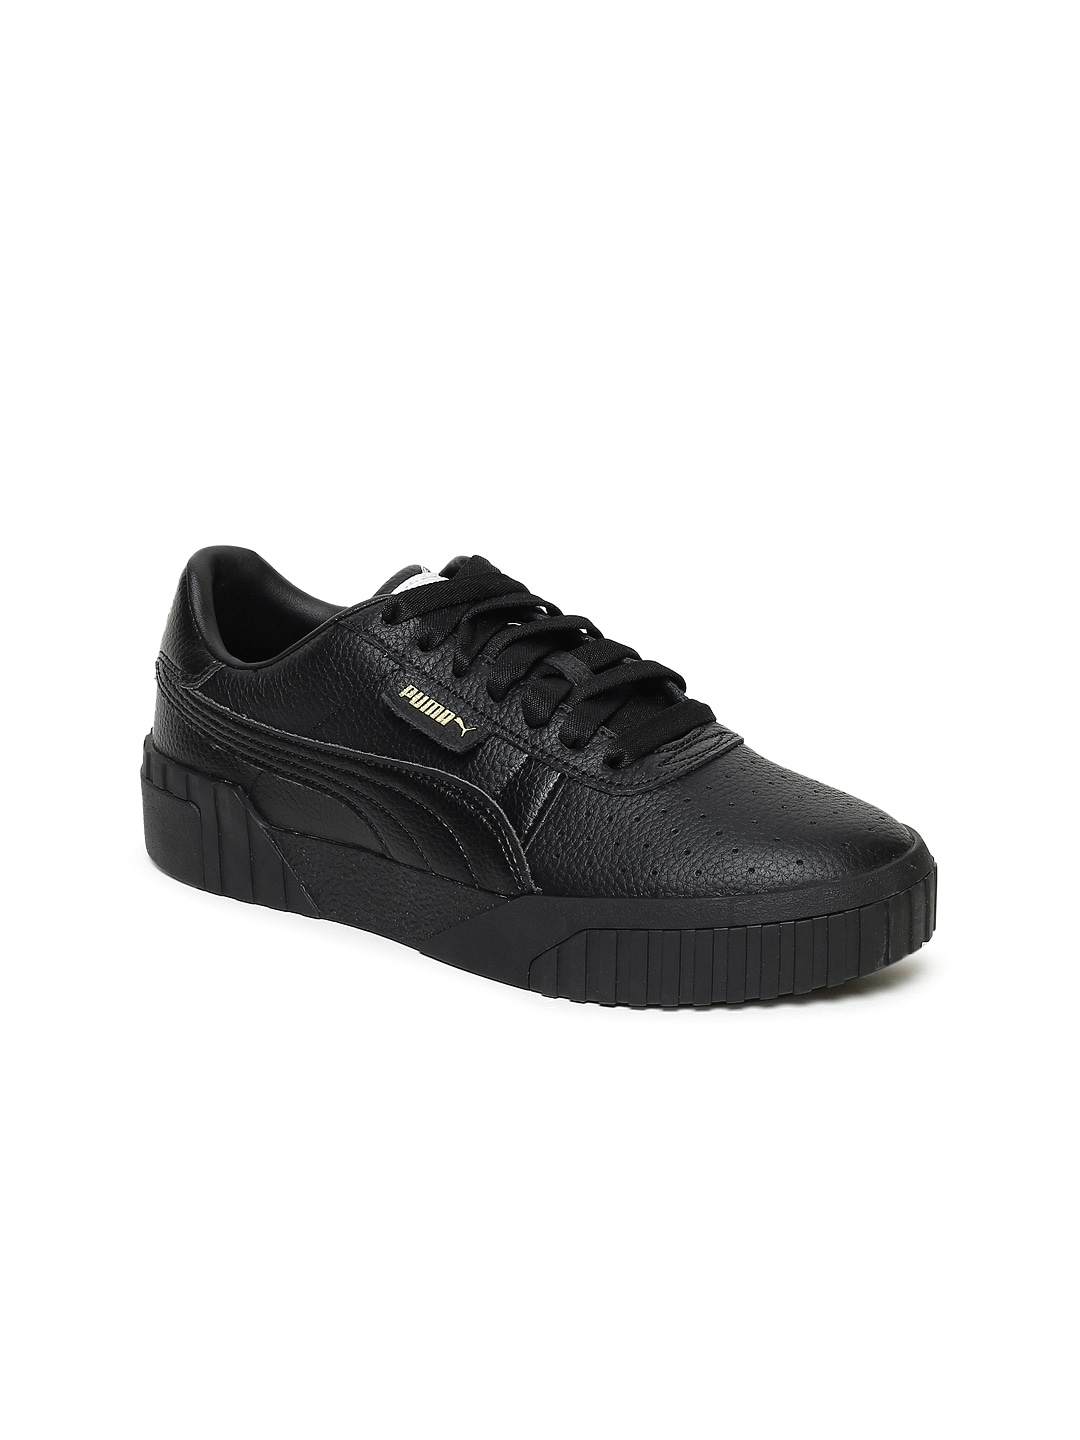 8e139b1ff85c Puma Shoes - Buy Puma Shoes for Men   Women Online in India